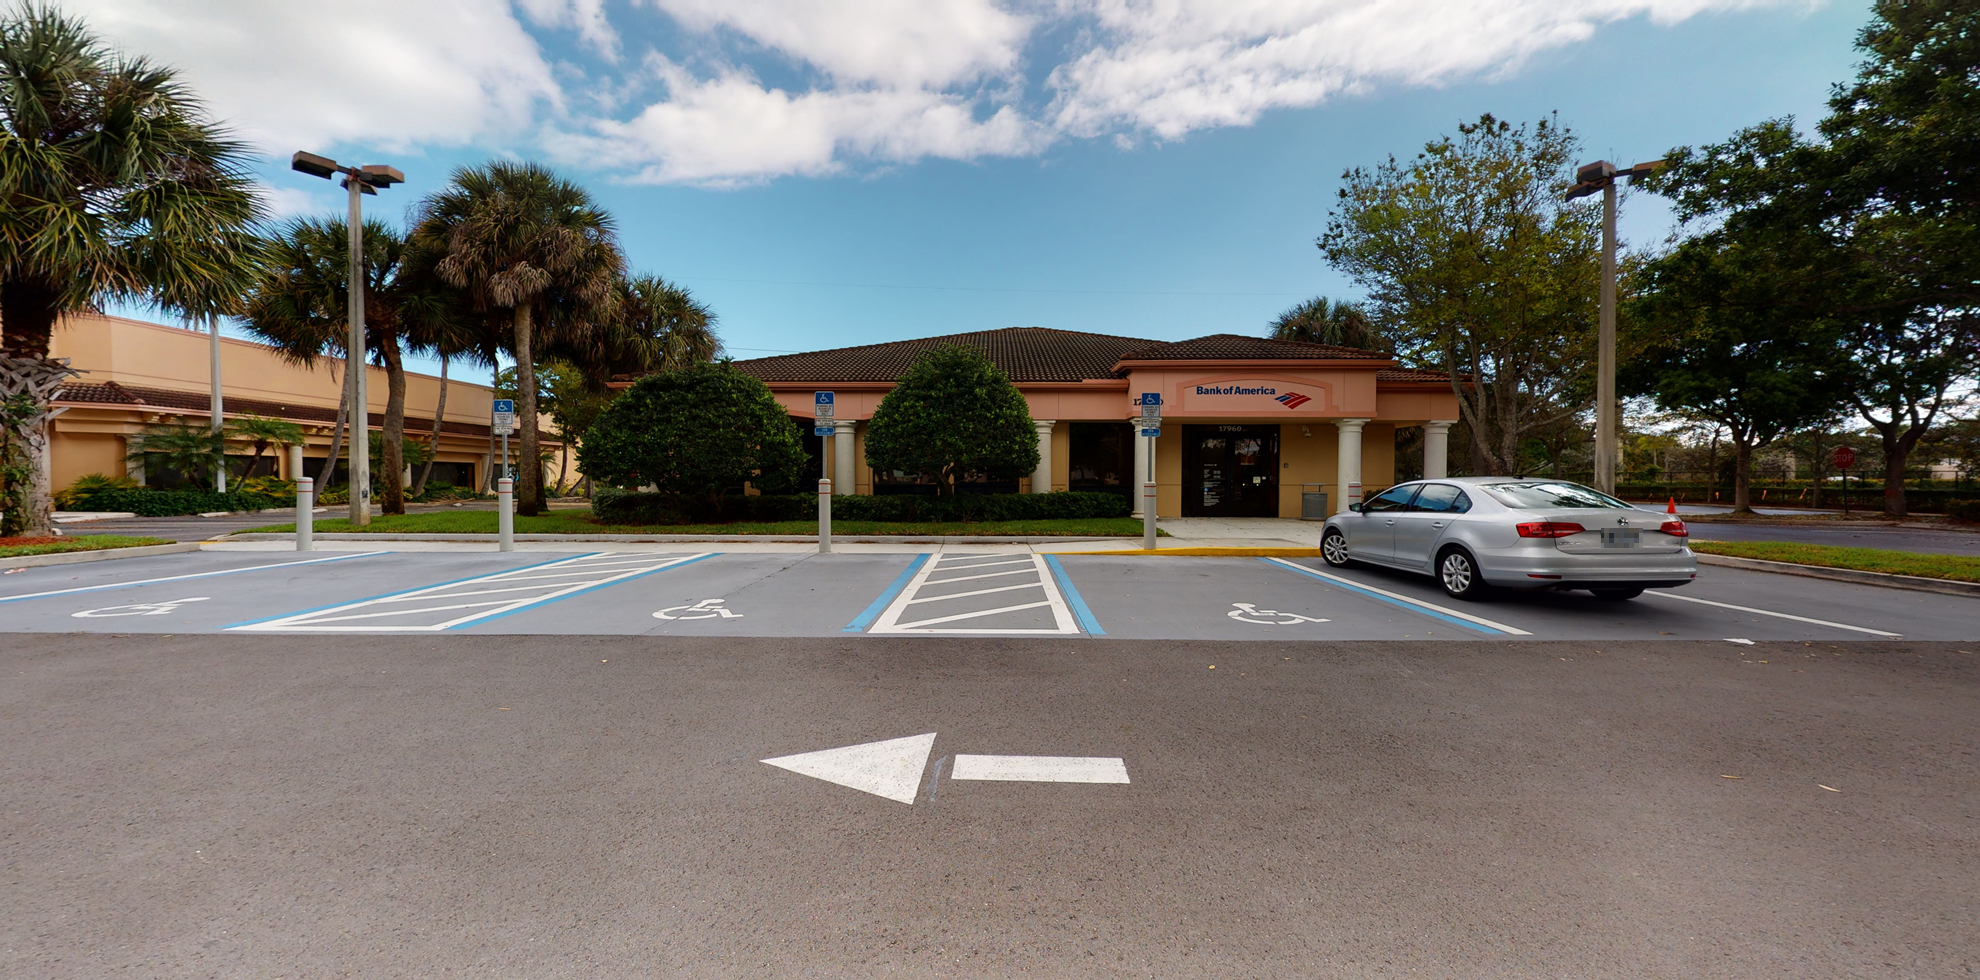 Bank of America financial center with drive-thru ATM and teller   17960 S Military Trl, Boca Raton, FL 33496